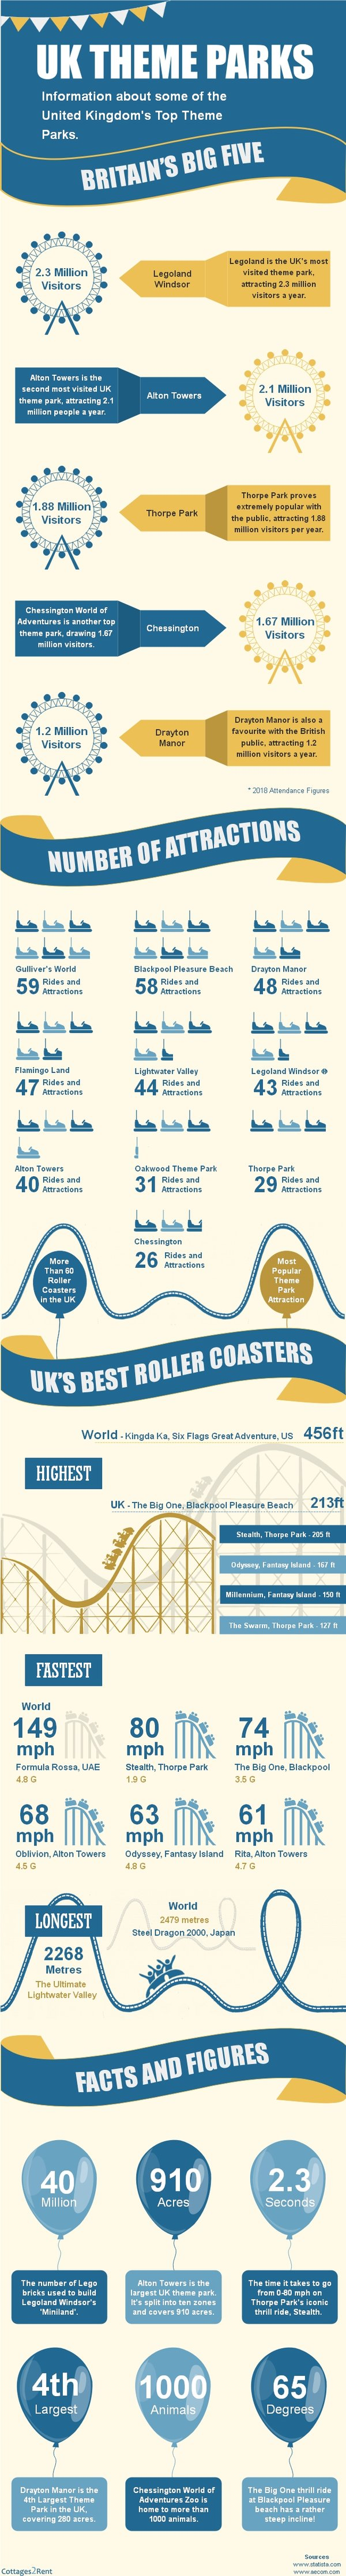 Top UK Theme Parks